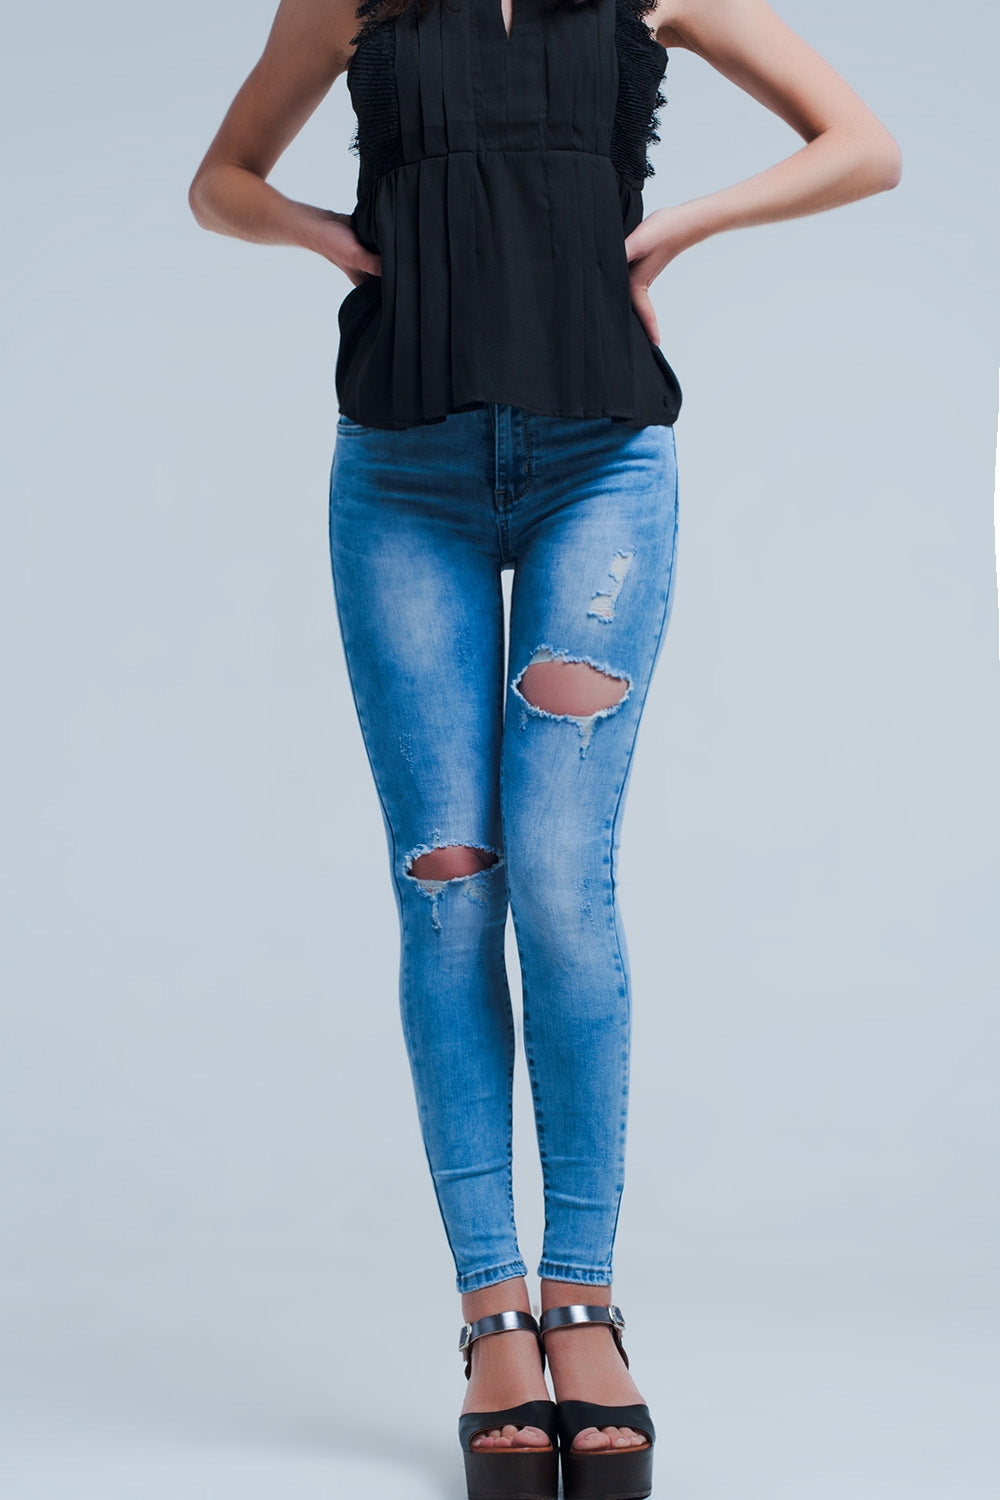 """Tayler"" Distressed Skinny Jeans - Mint Leafe Boutique"